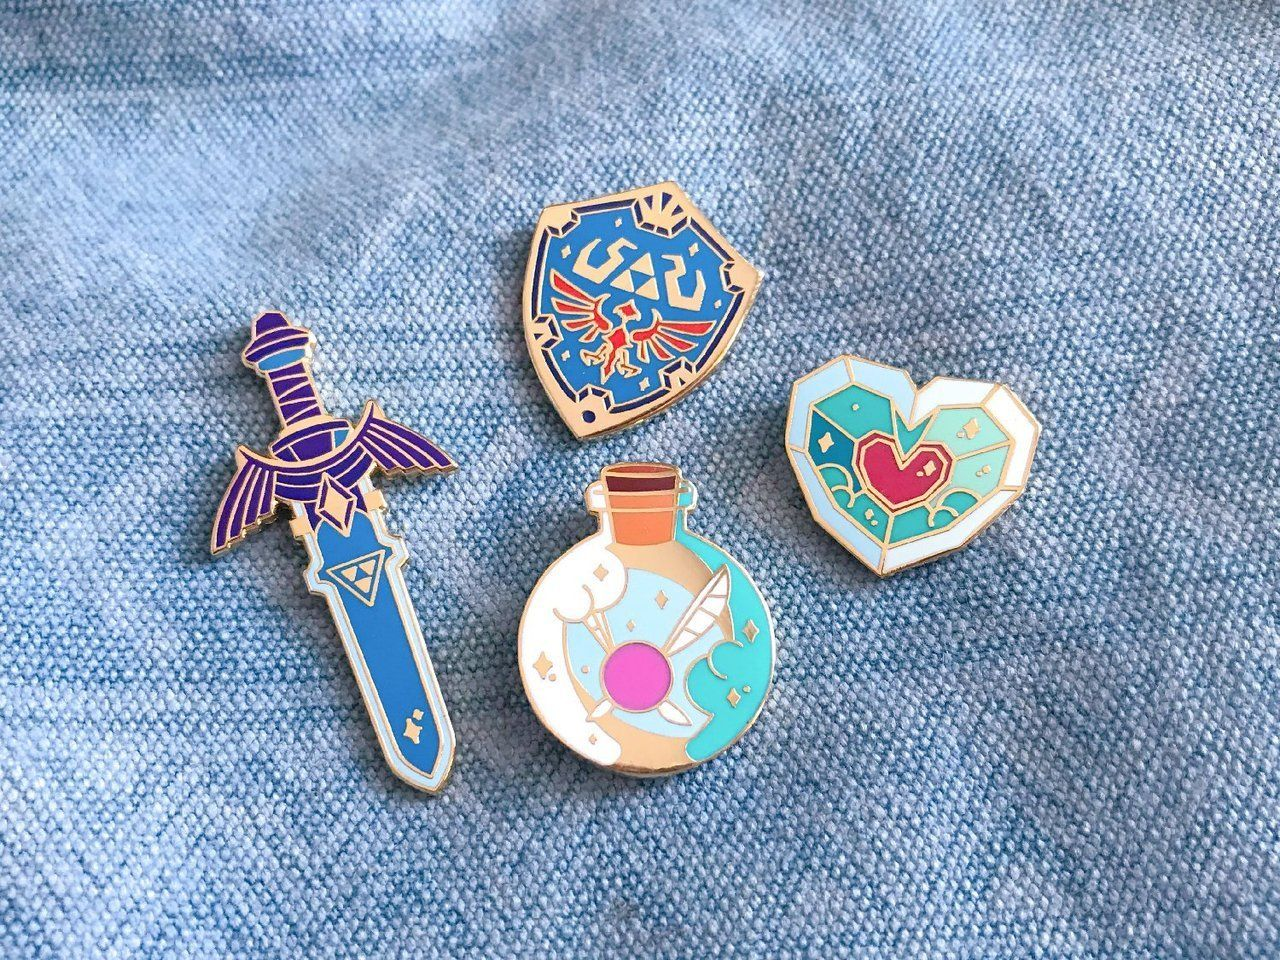 Legend of Zelda Pins made by Lily Xia -